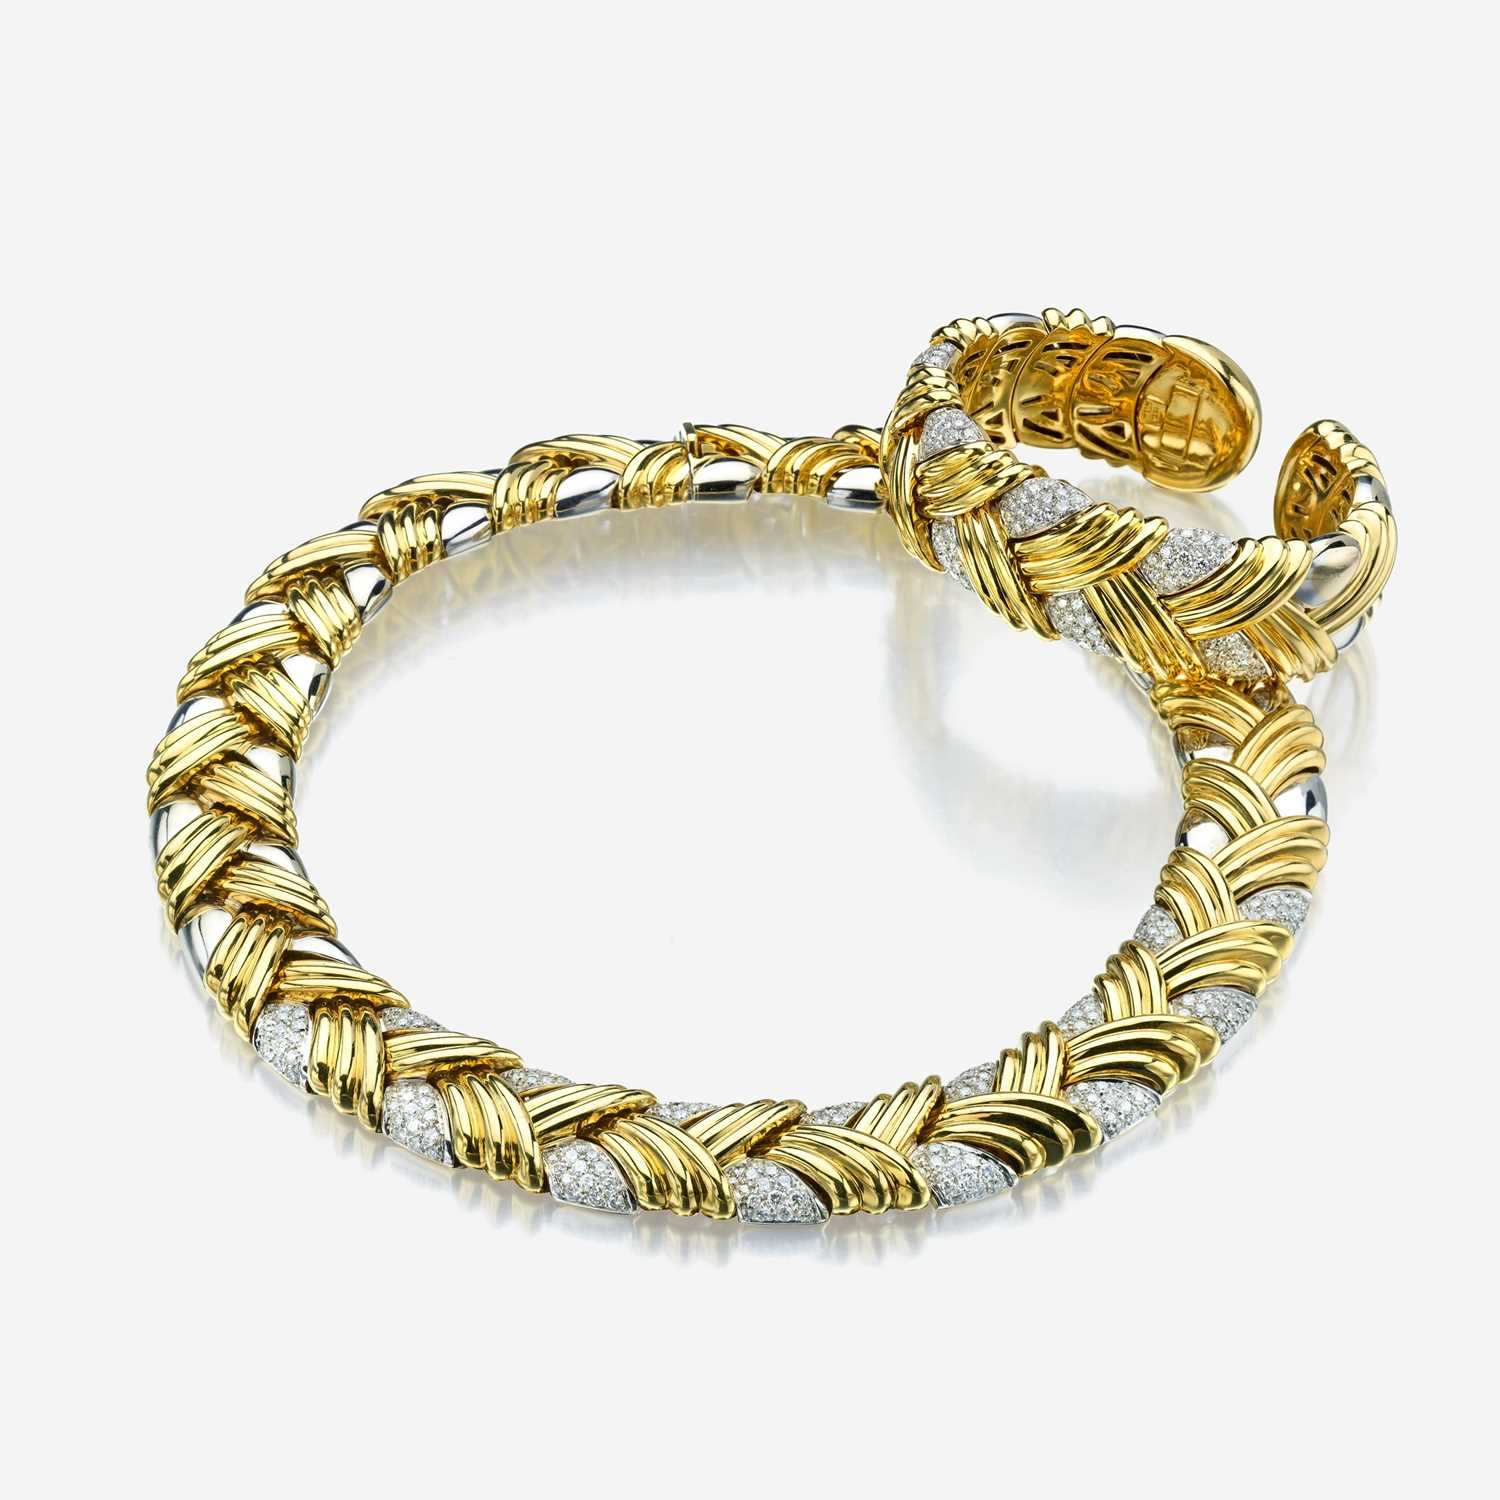 Lot 57 - An eighteen karat two tone gold and diamond necklace with matching bracelet